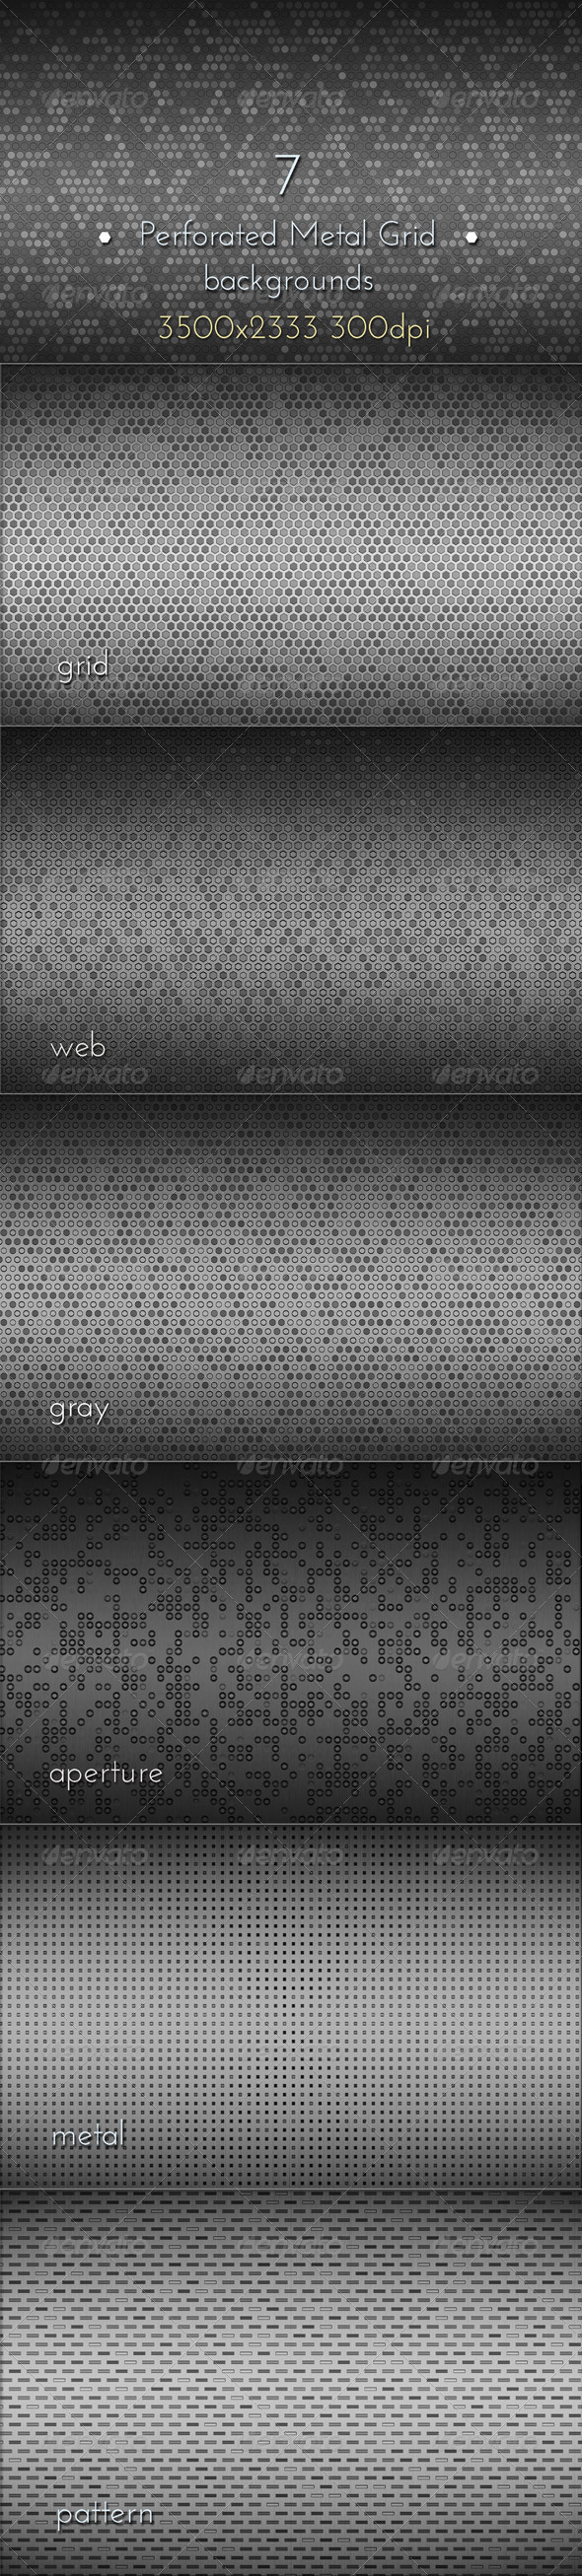 GraphicRiver Perforated Metal Grid Backgrounds 8531727